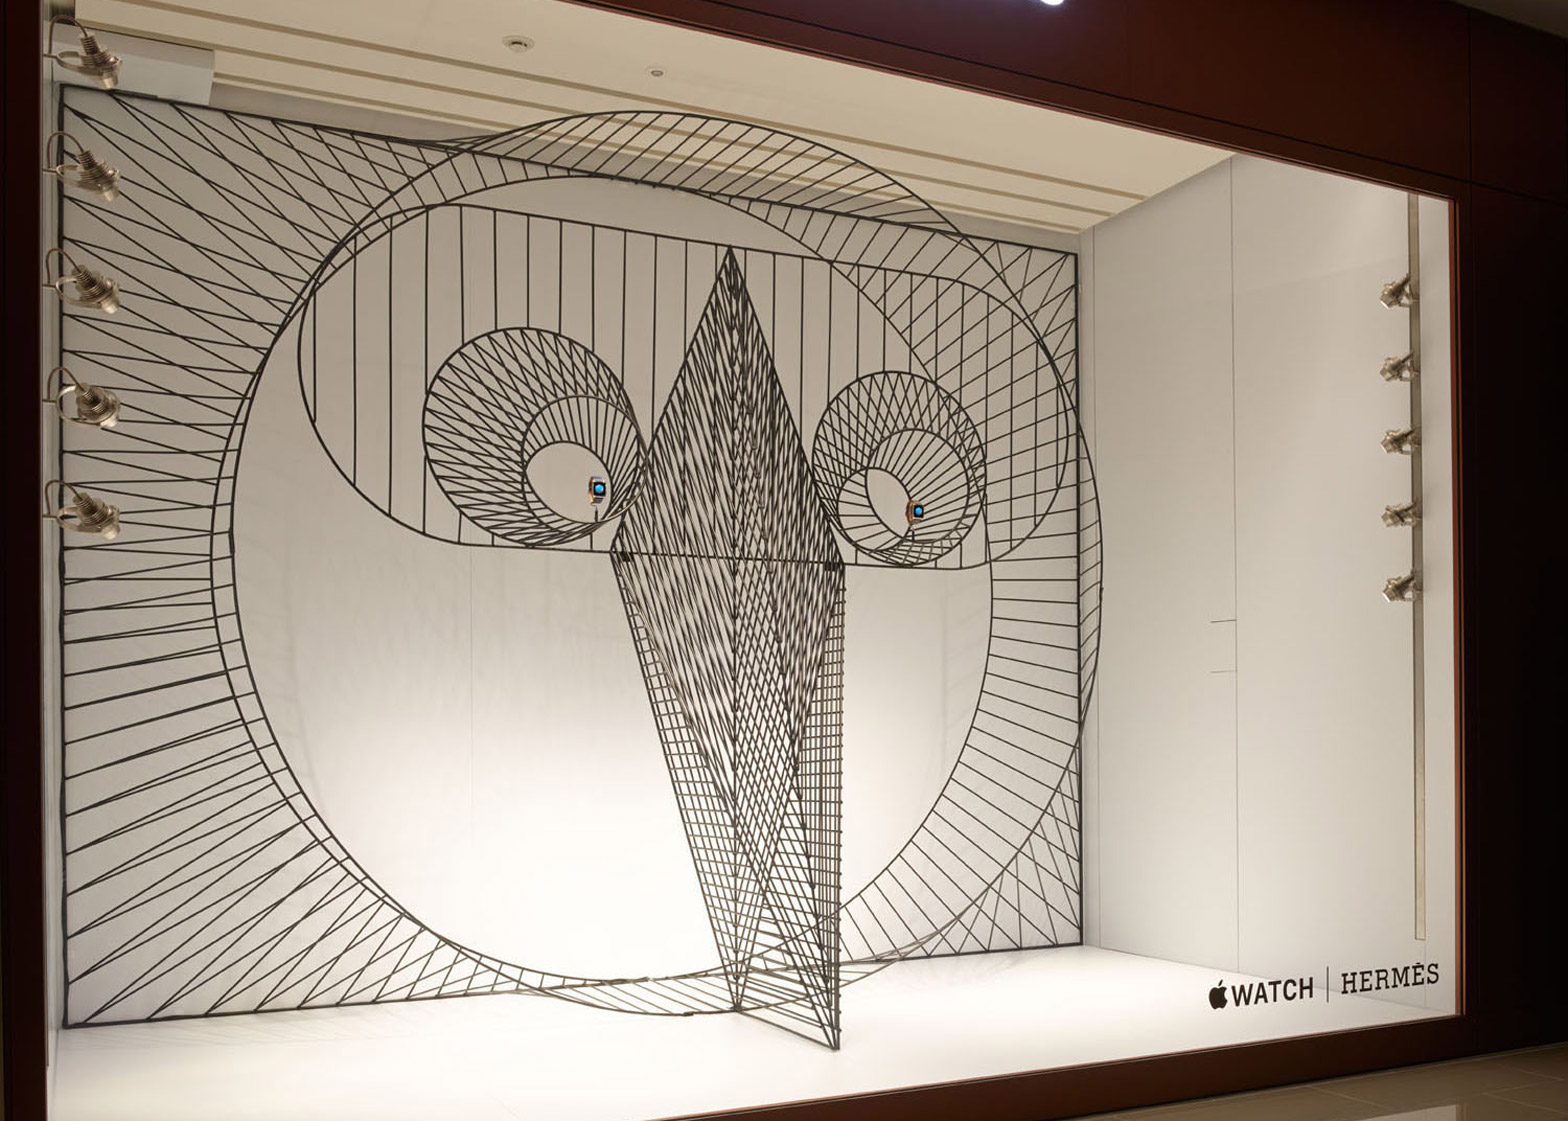 A Hermes window display focused on the Apple Watch, featuring geometric 3D minimalist motifs.